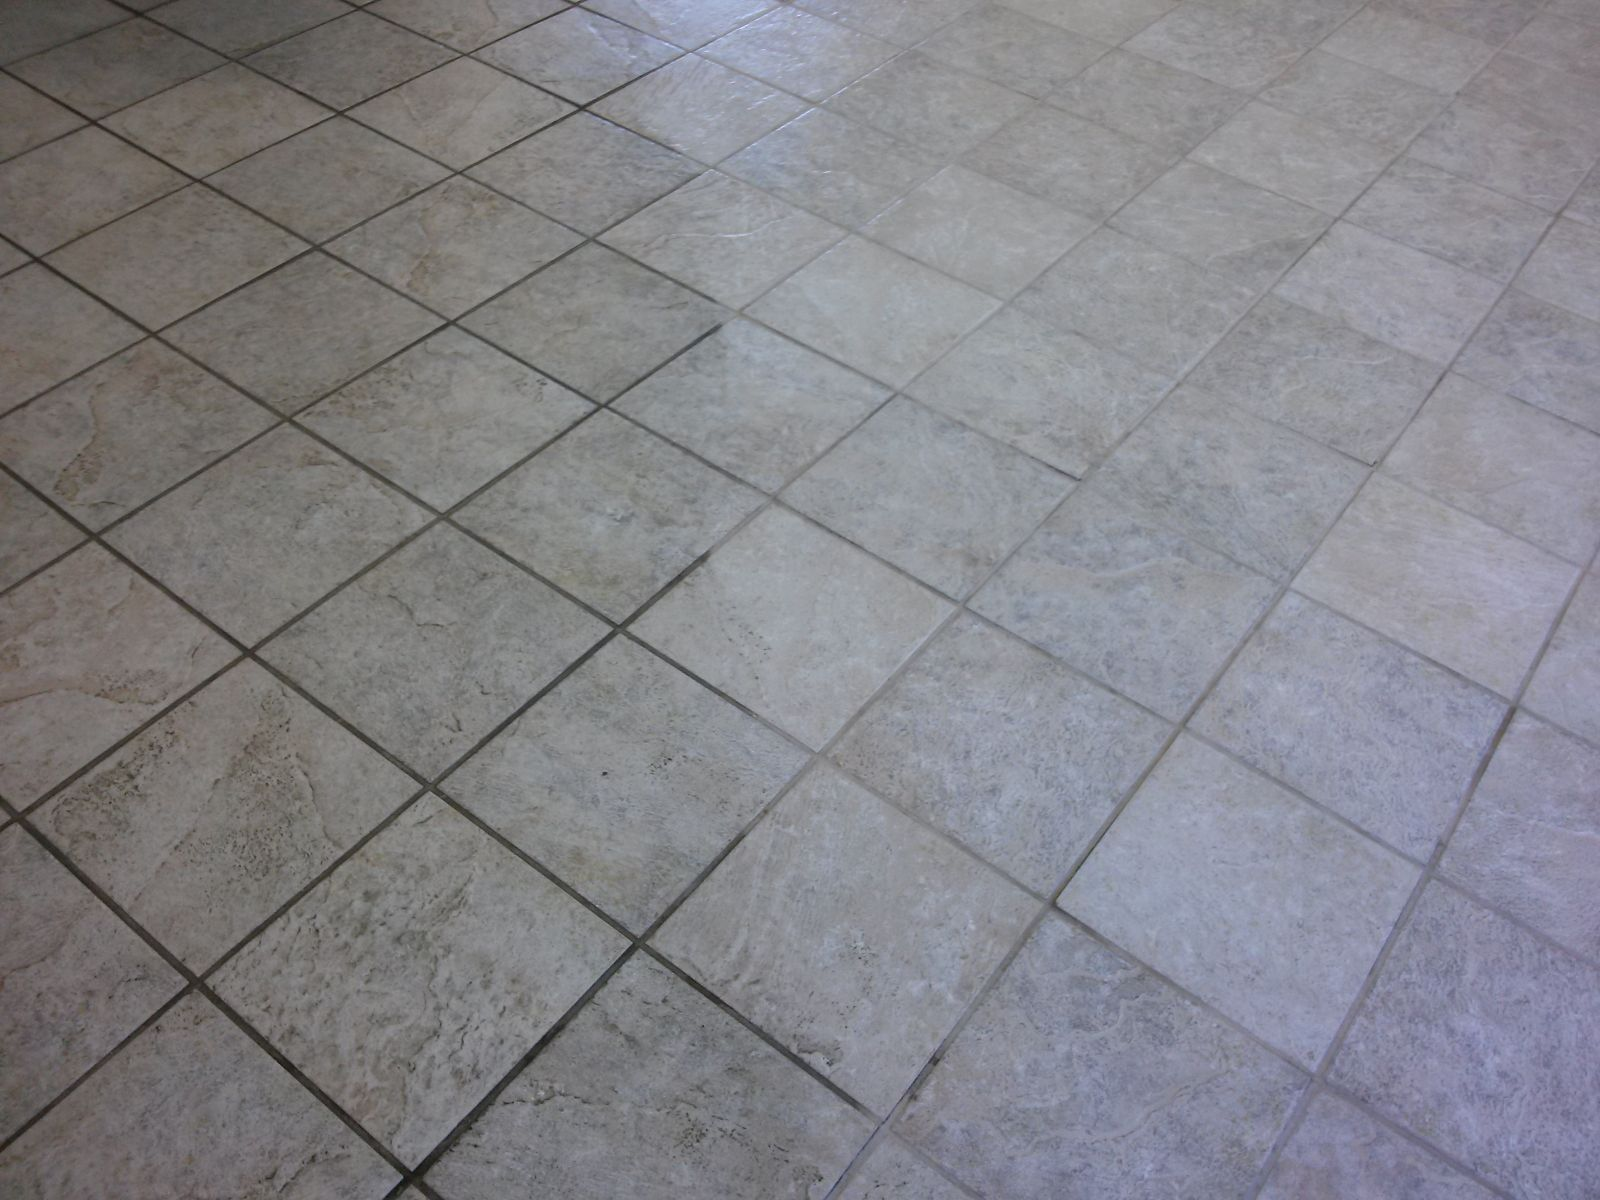 Our Tile And Grout Cleaning In Belleville IL Will Bring Back The Shine - Cleaning very dirty tile floors